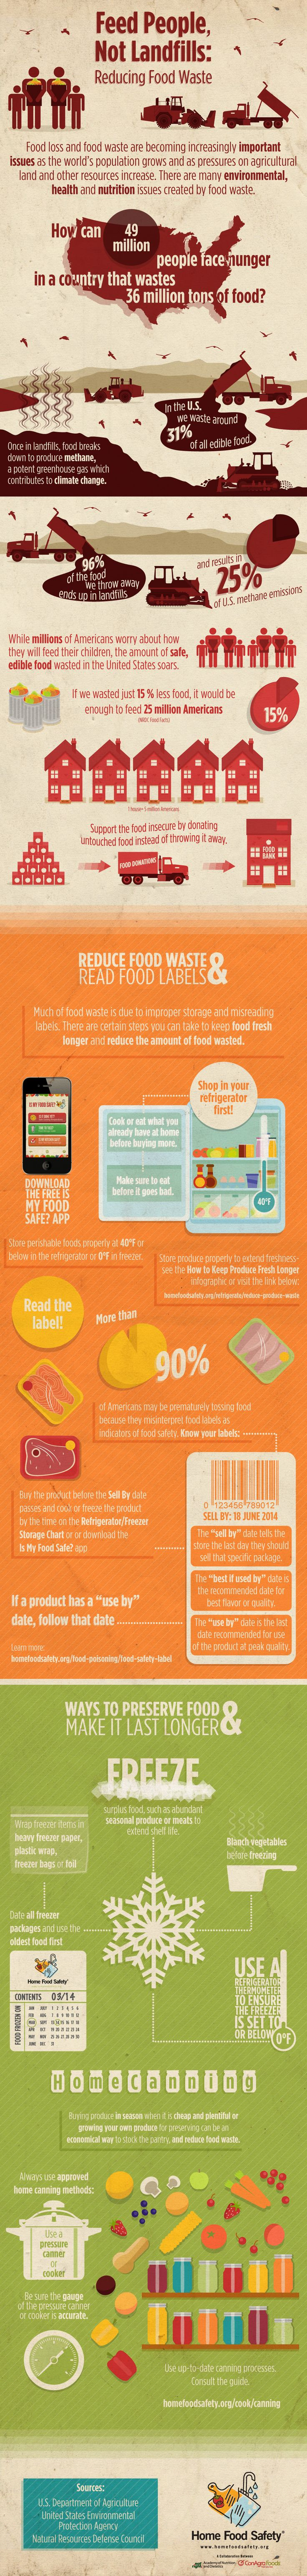 Help reduce food waste in the United States. #ThinkFood #foodwaste #infographic